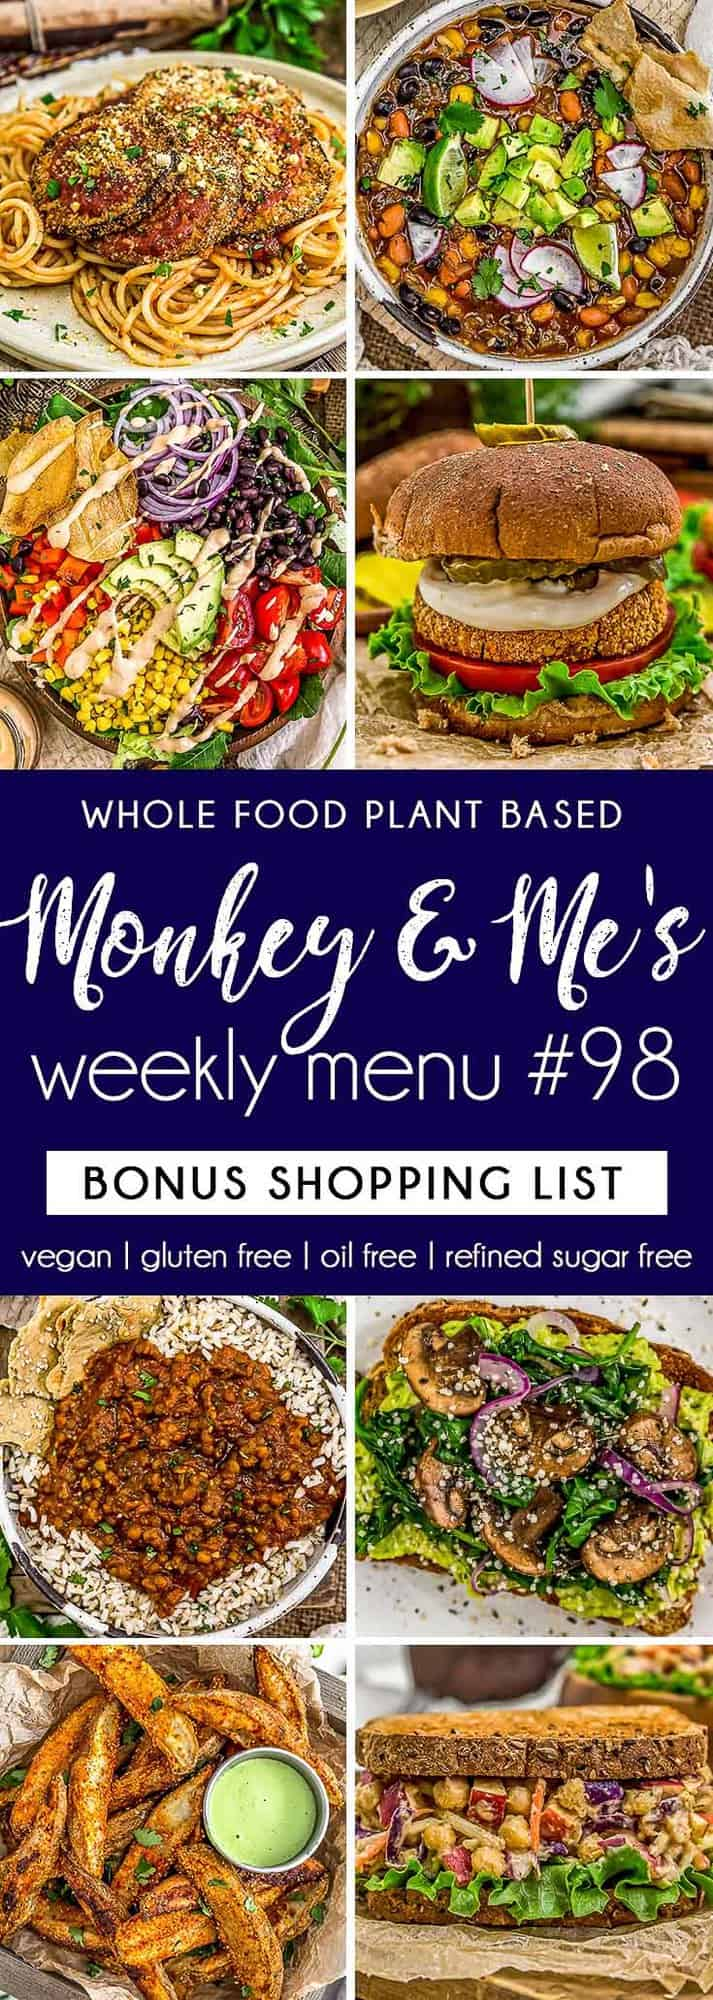 Monkey and Me's Menu 98 featuring 8 recipes